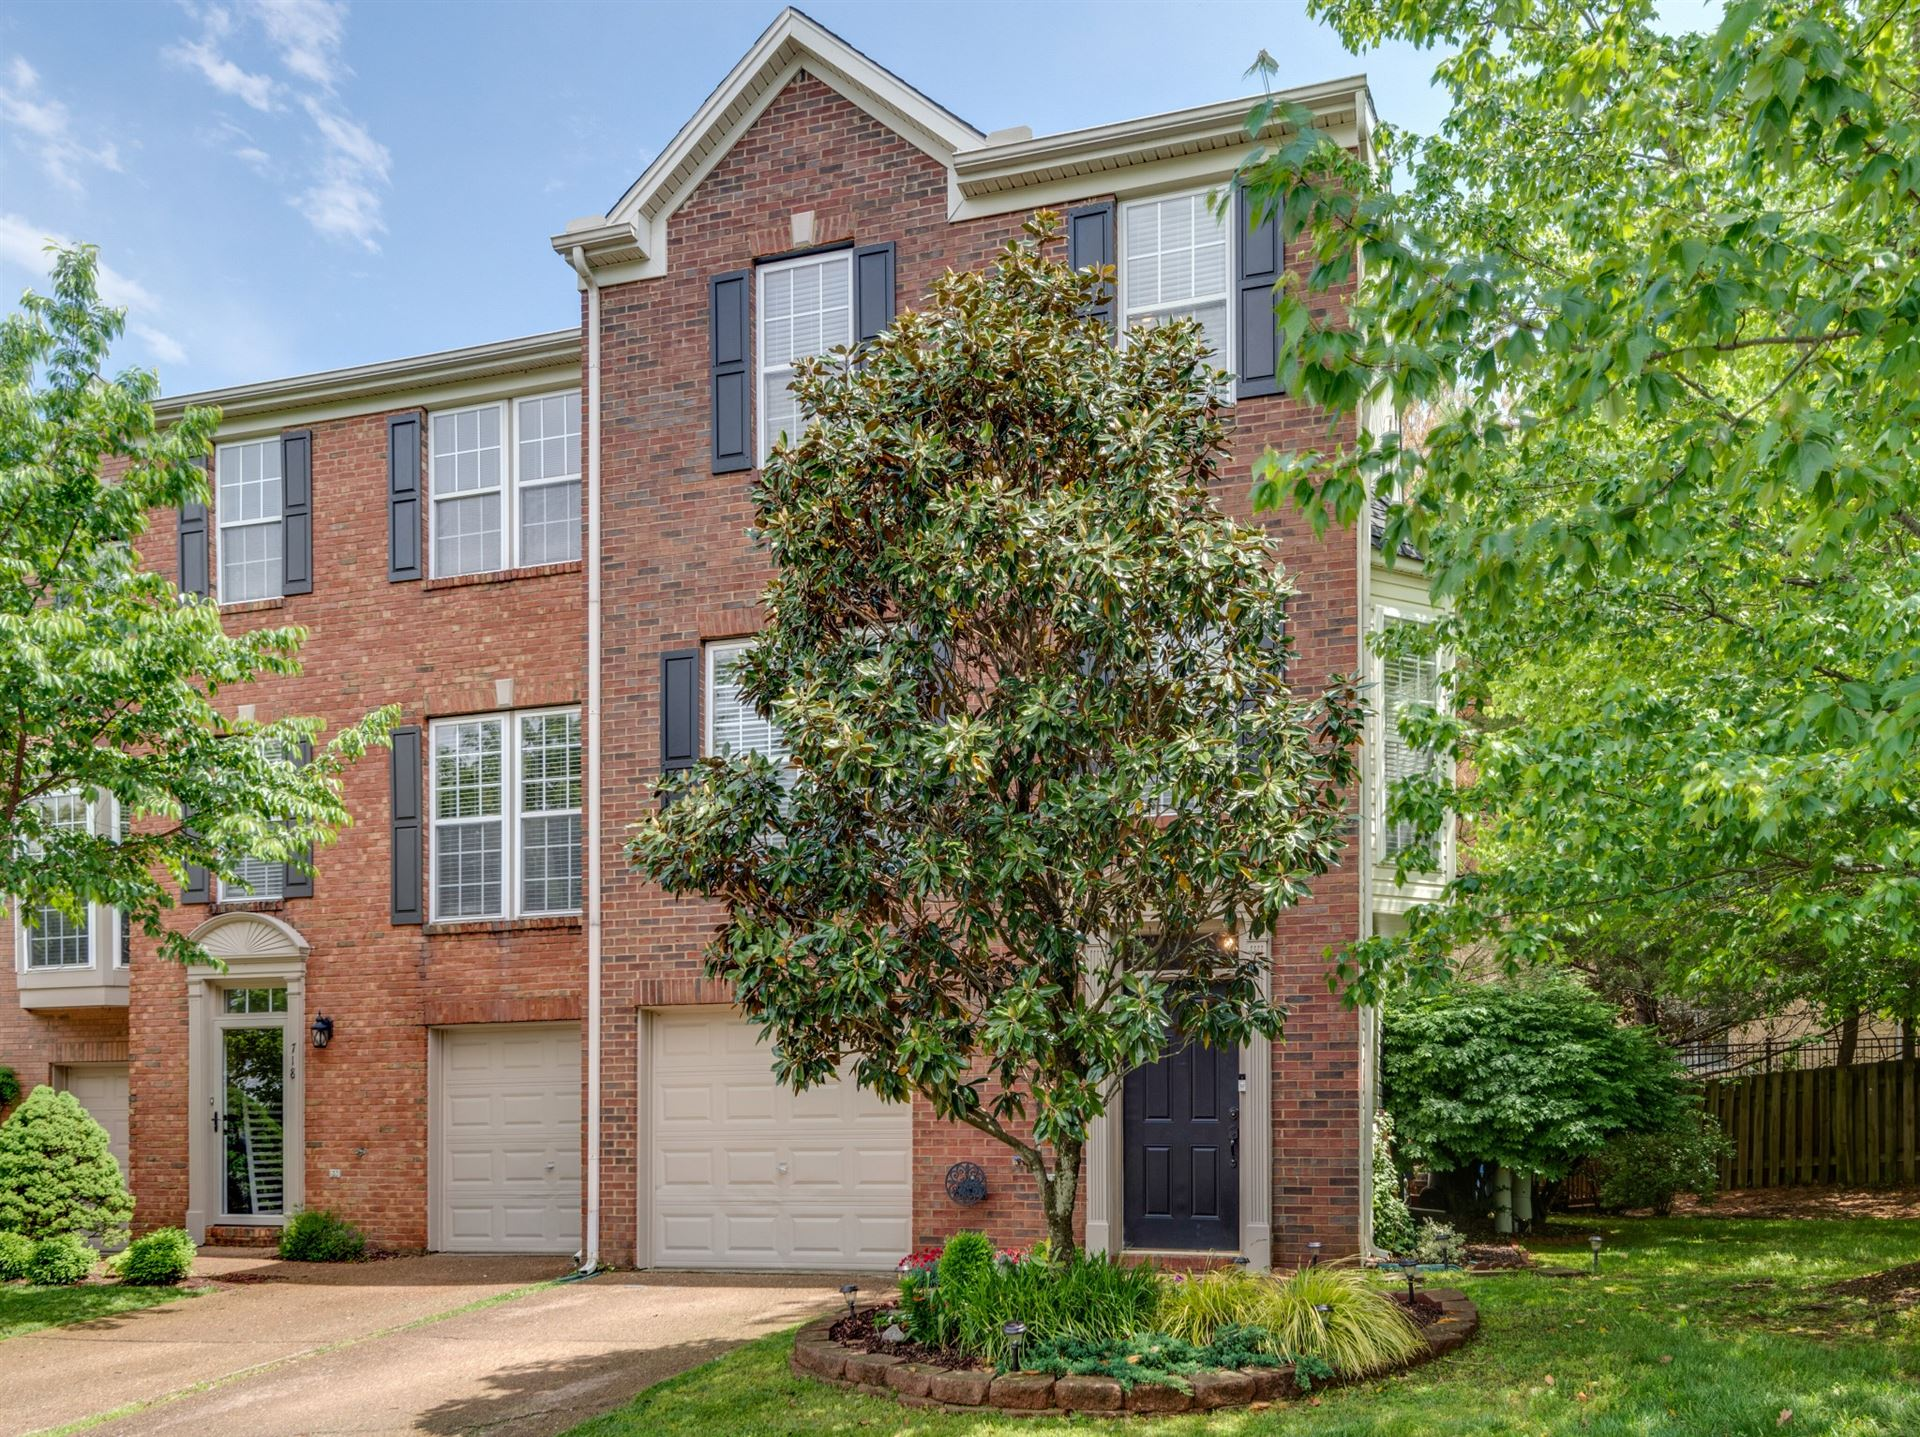 716 Huffine Manor Cir, Franklin, TN 37067 - MLS#: 2250933